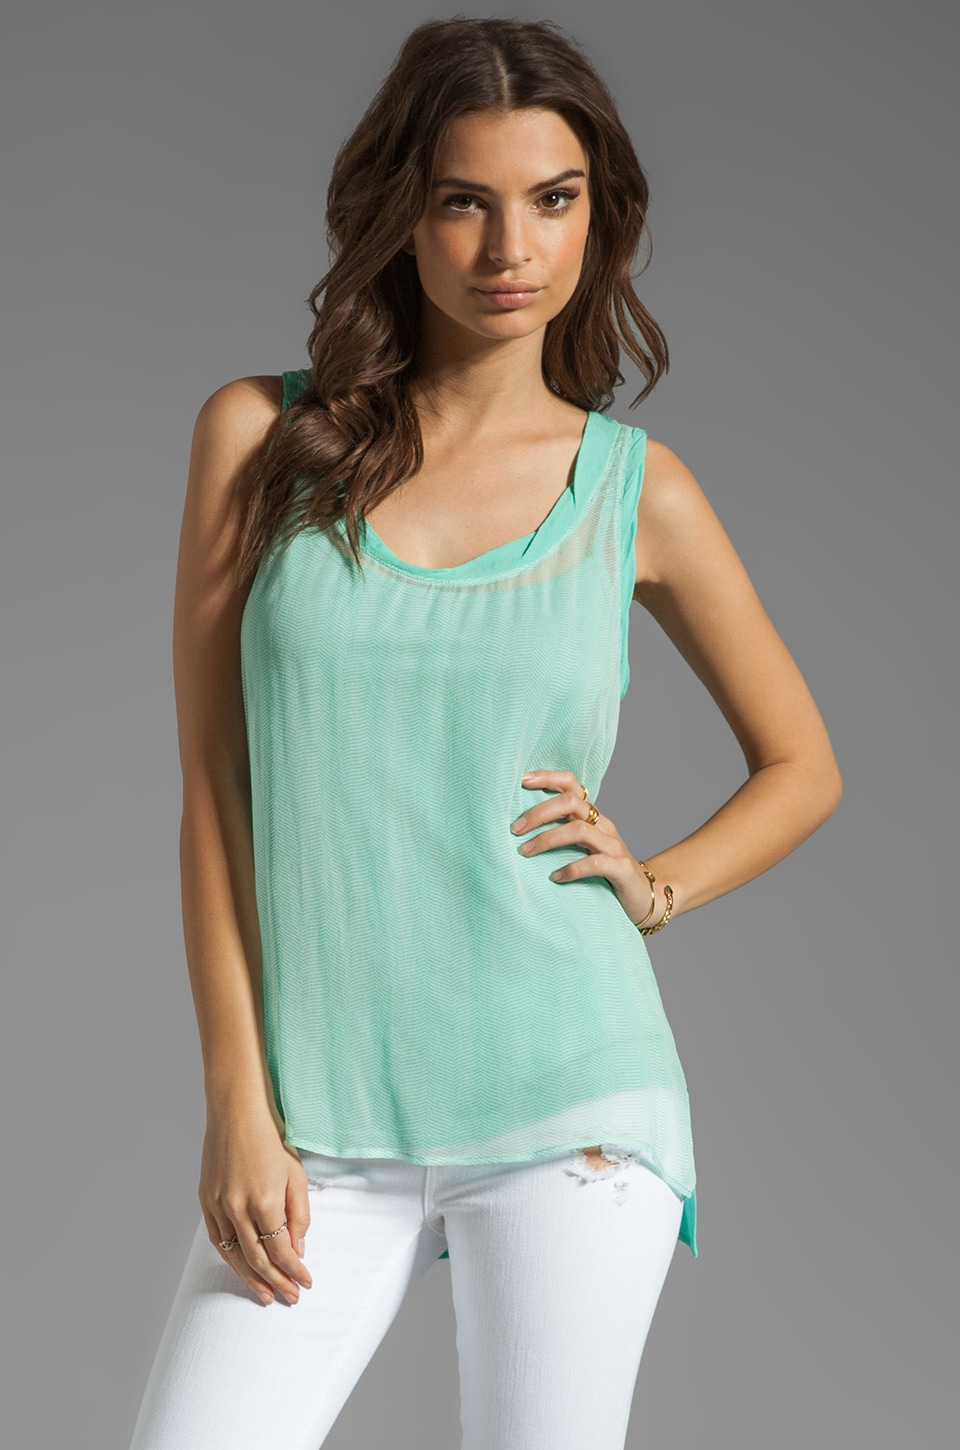 Ella Moss Cisco Tank in Mint